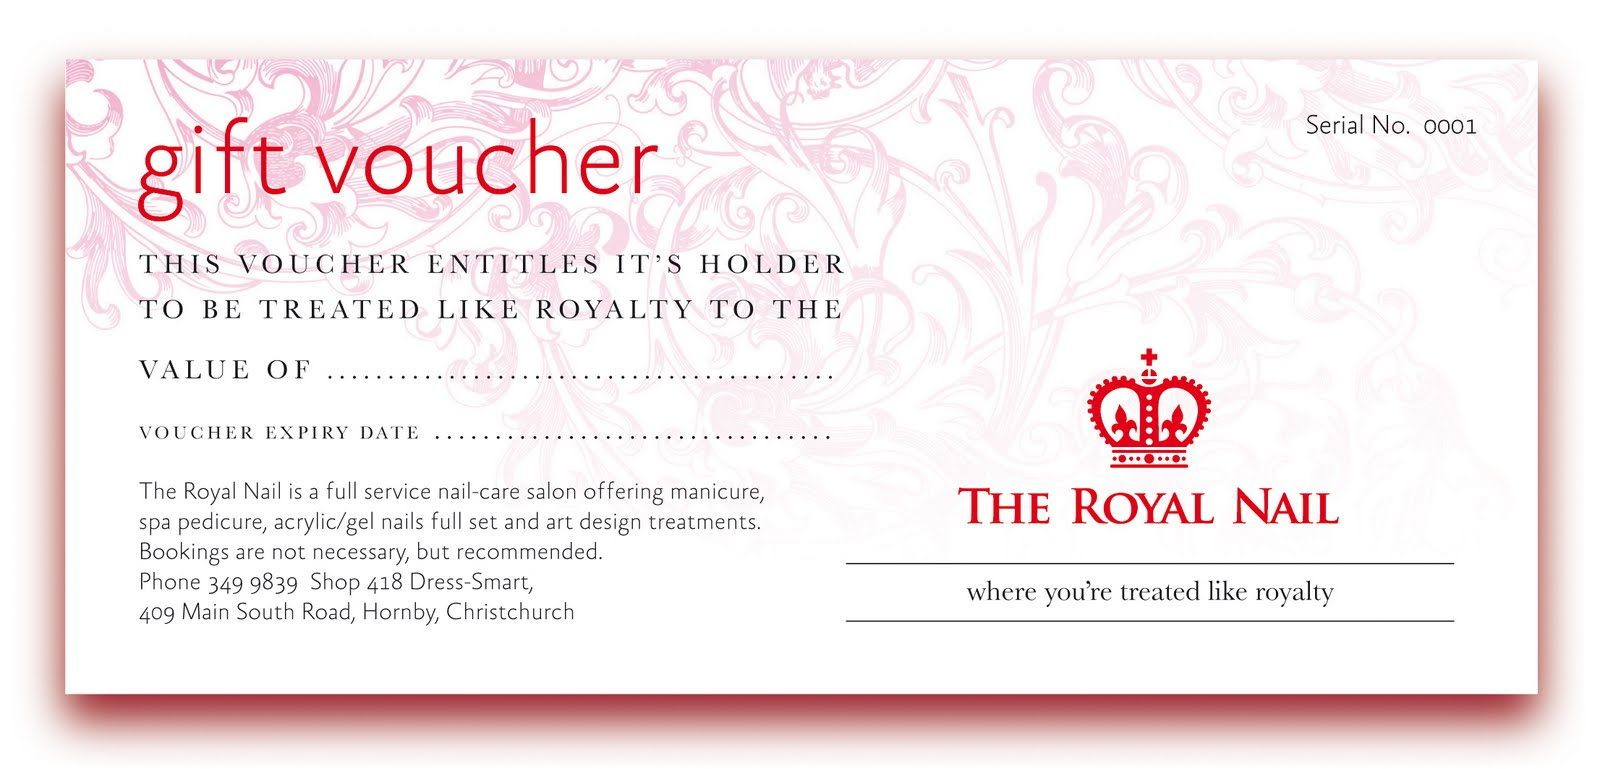 THE ROYAL NAIL: Treatments and Prices